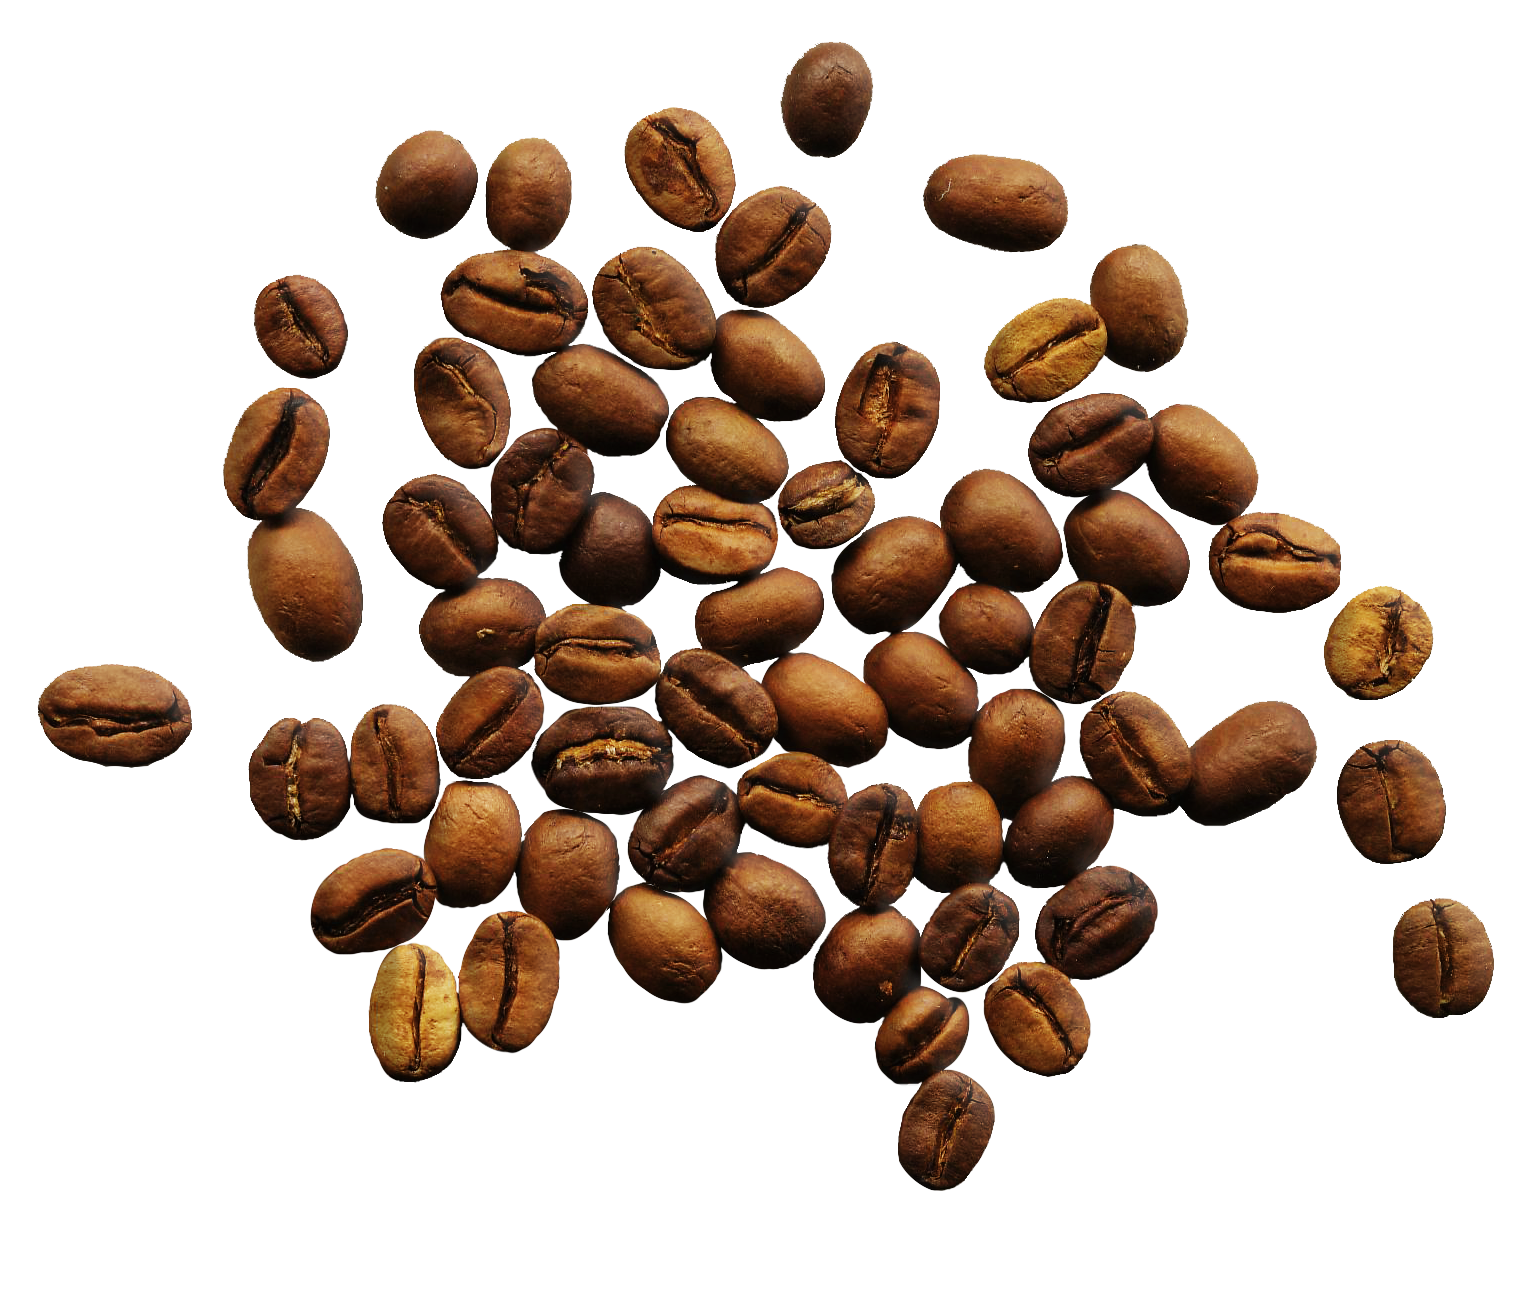 Coffee grounds png. Beans images free download